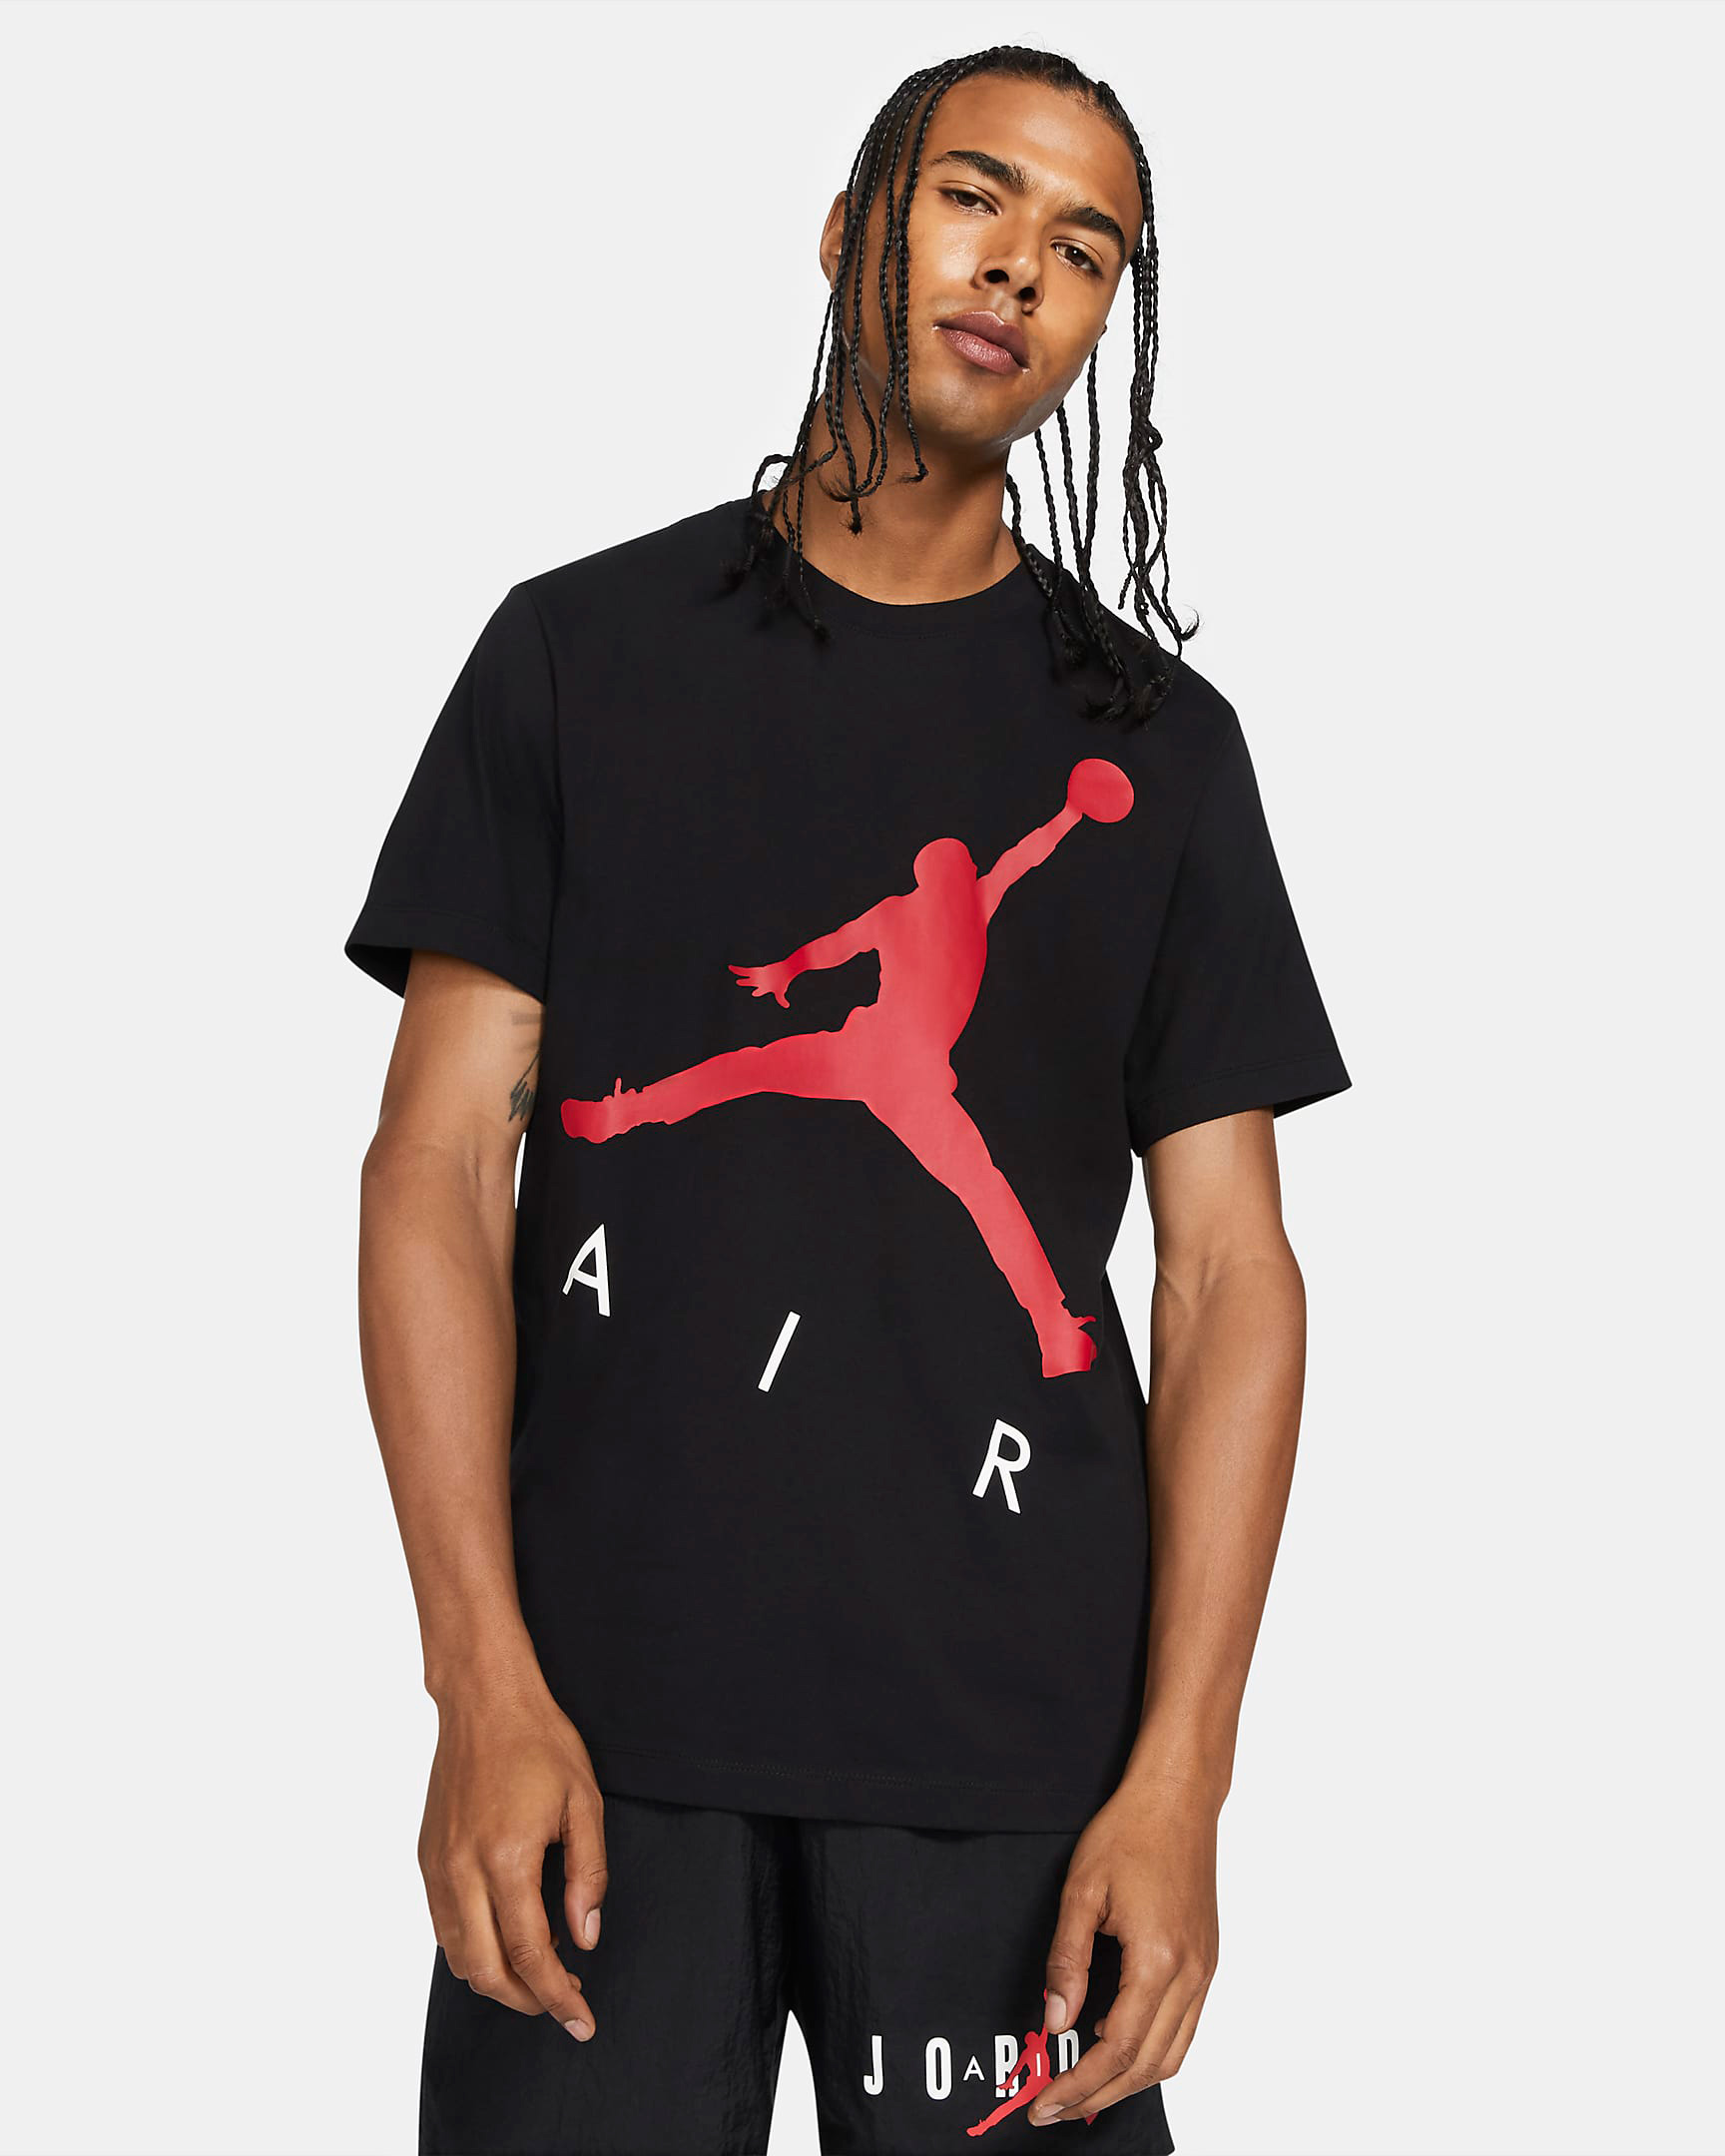 jordan-jumpman-air-t-shirt-summer-2021-black-white-red